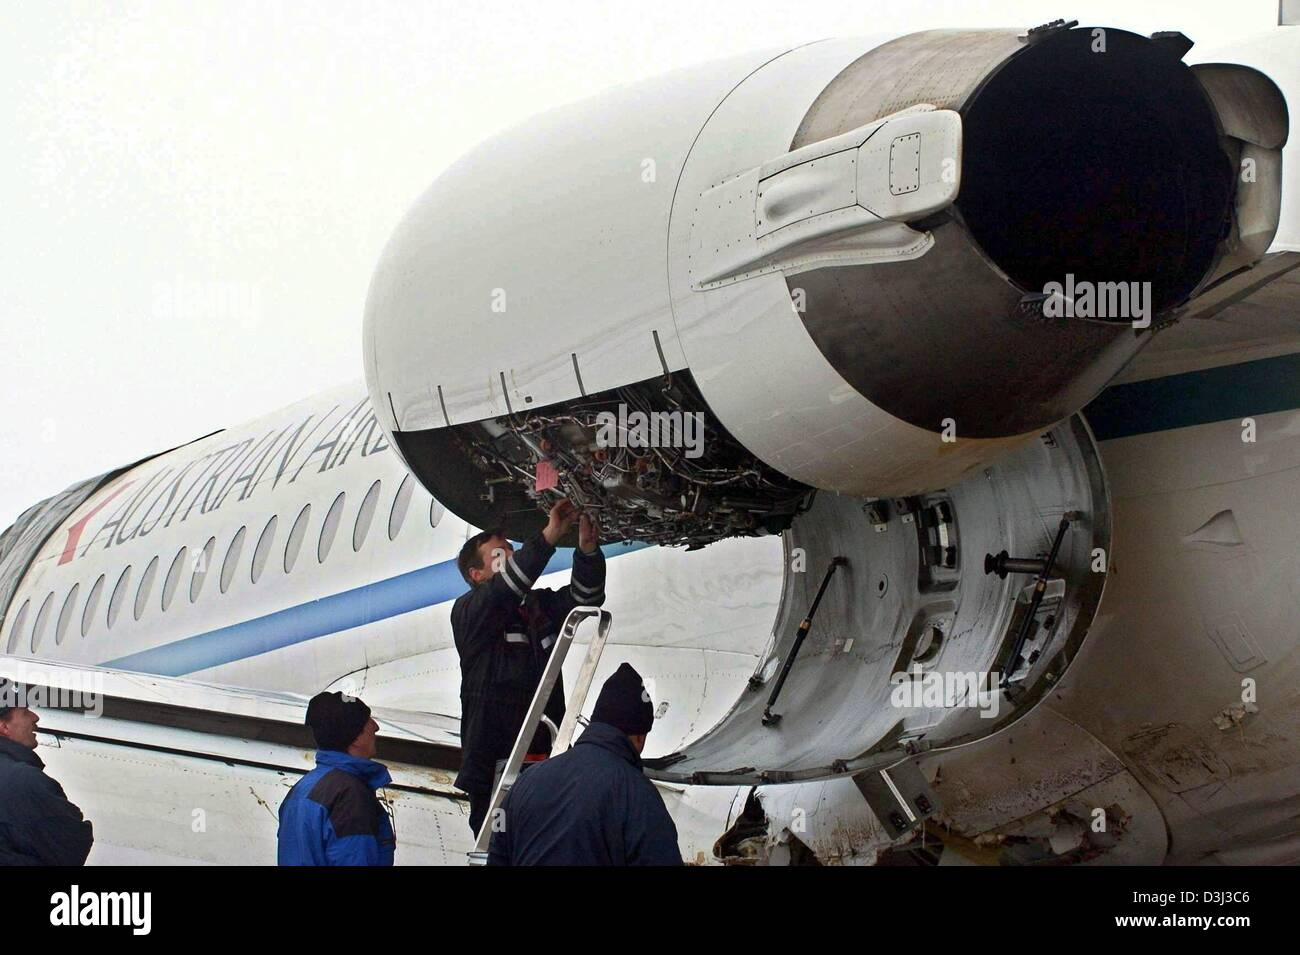 (dpa) - Specialists examine the left engine of the Austrian Airlines jet which made an emergency landing on 5 January - Stock Image